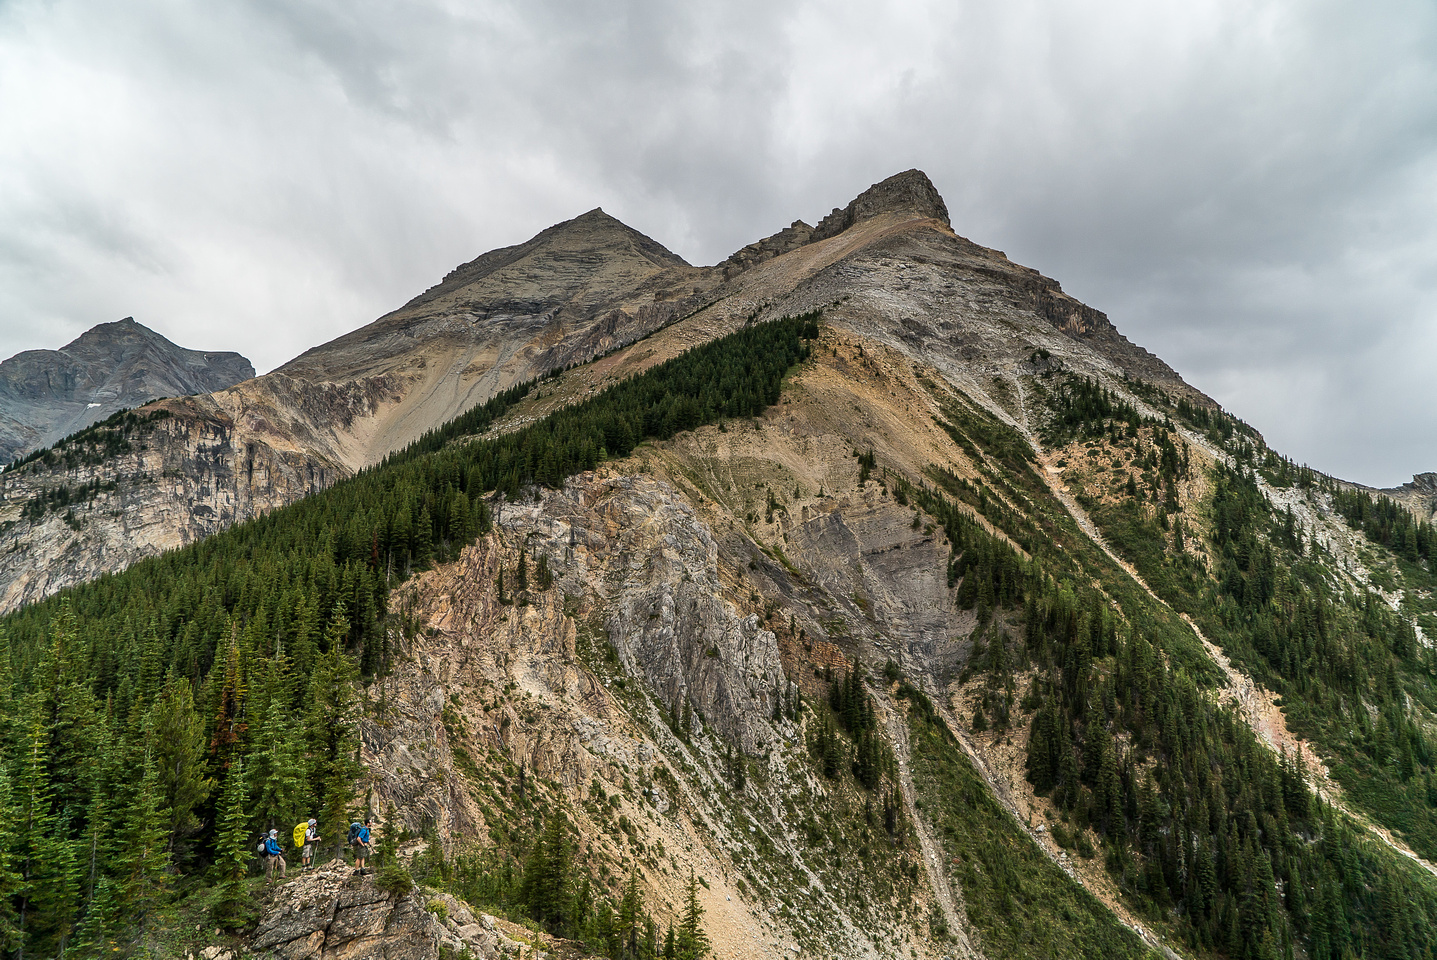 The high summit on the far left is an outlier of Harrison and is higher than Smith but unnamed - Harrison SE2 on Bivouac.